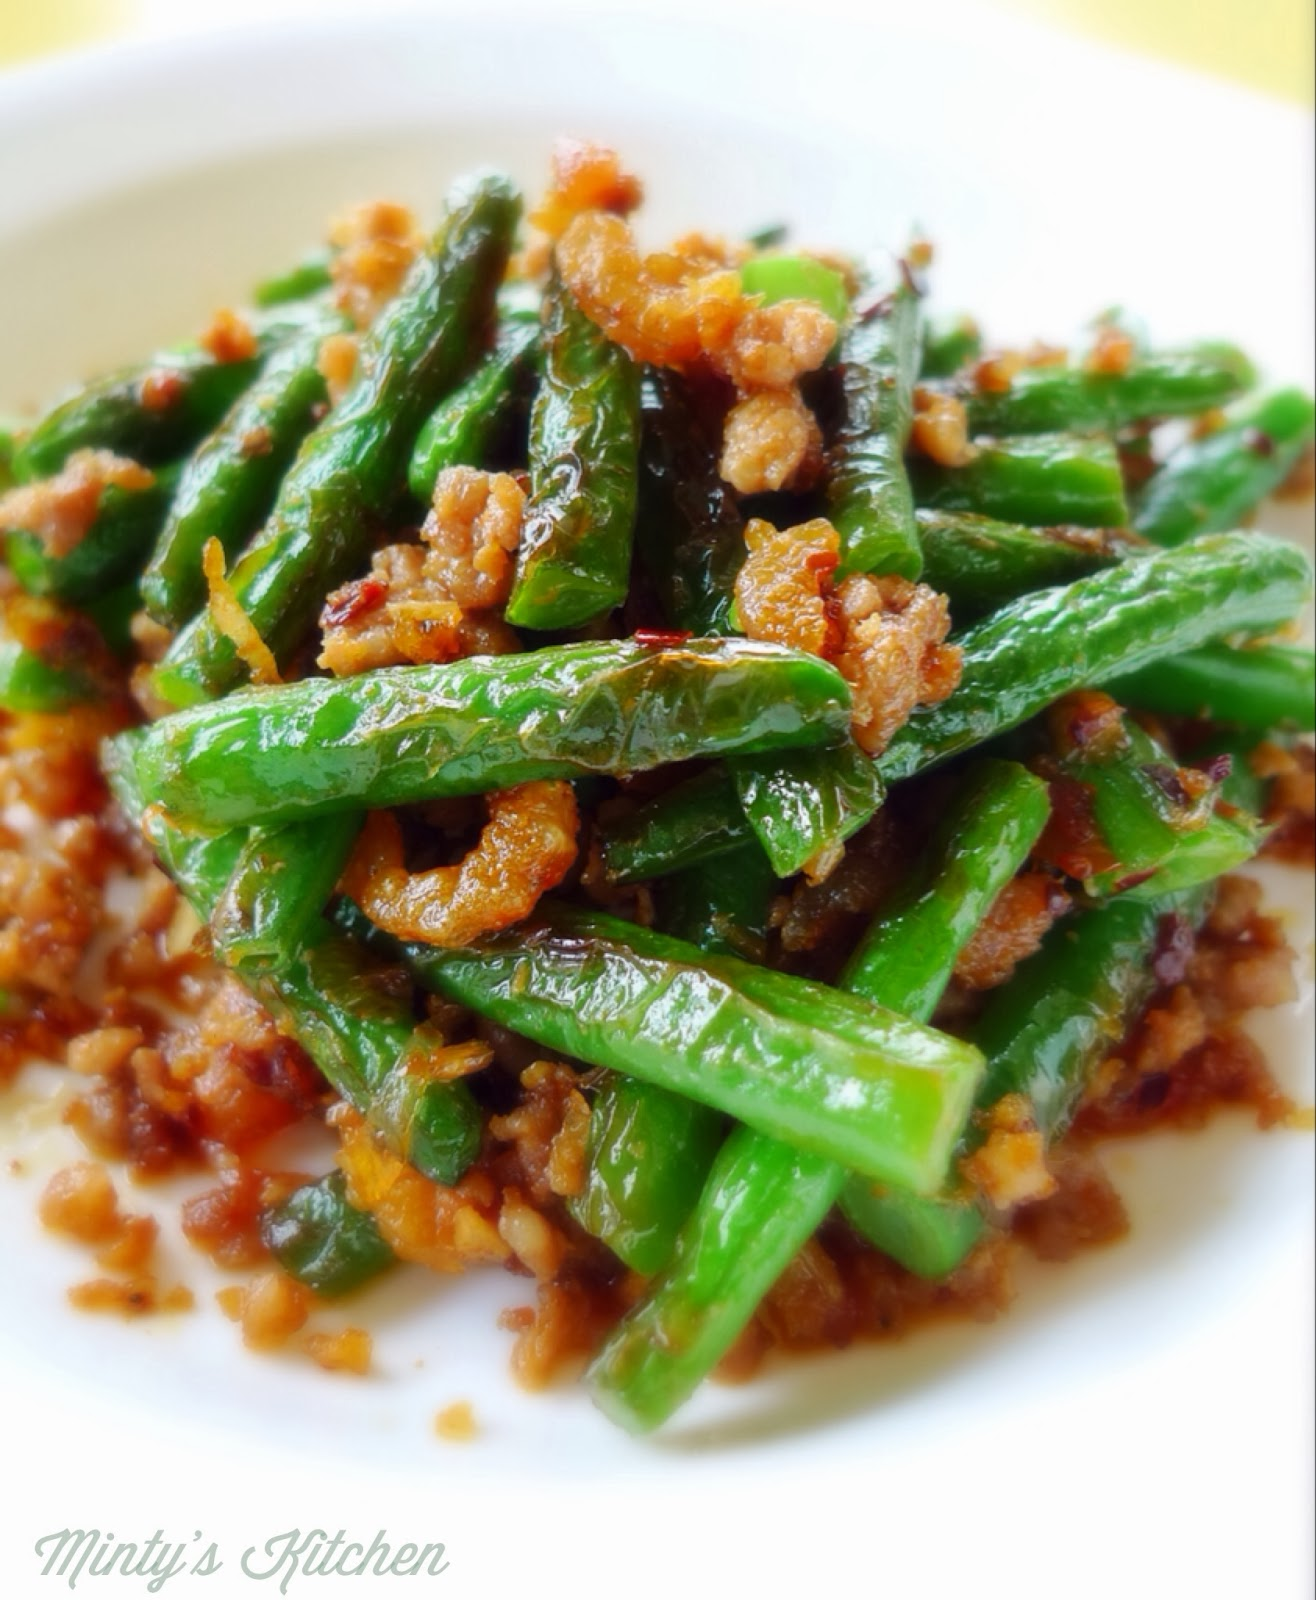 Minty's Kitchen: Fried Green Beans With Minced Pork & XO